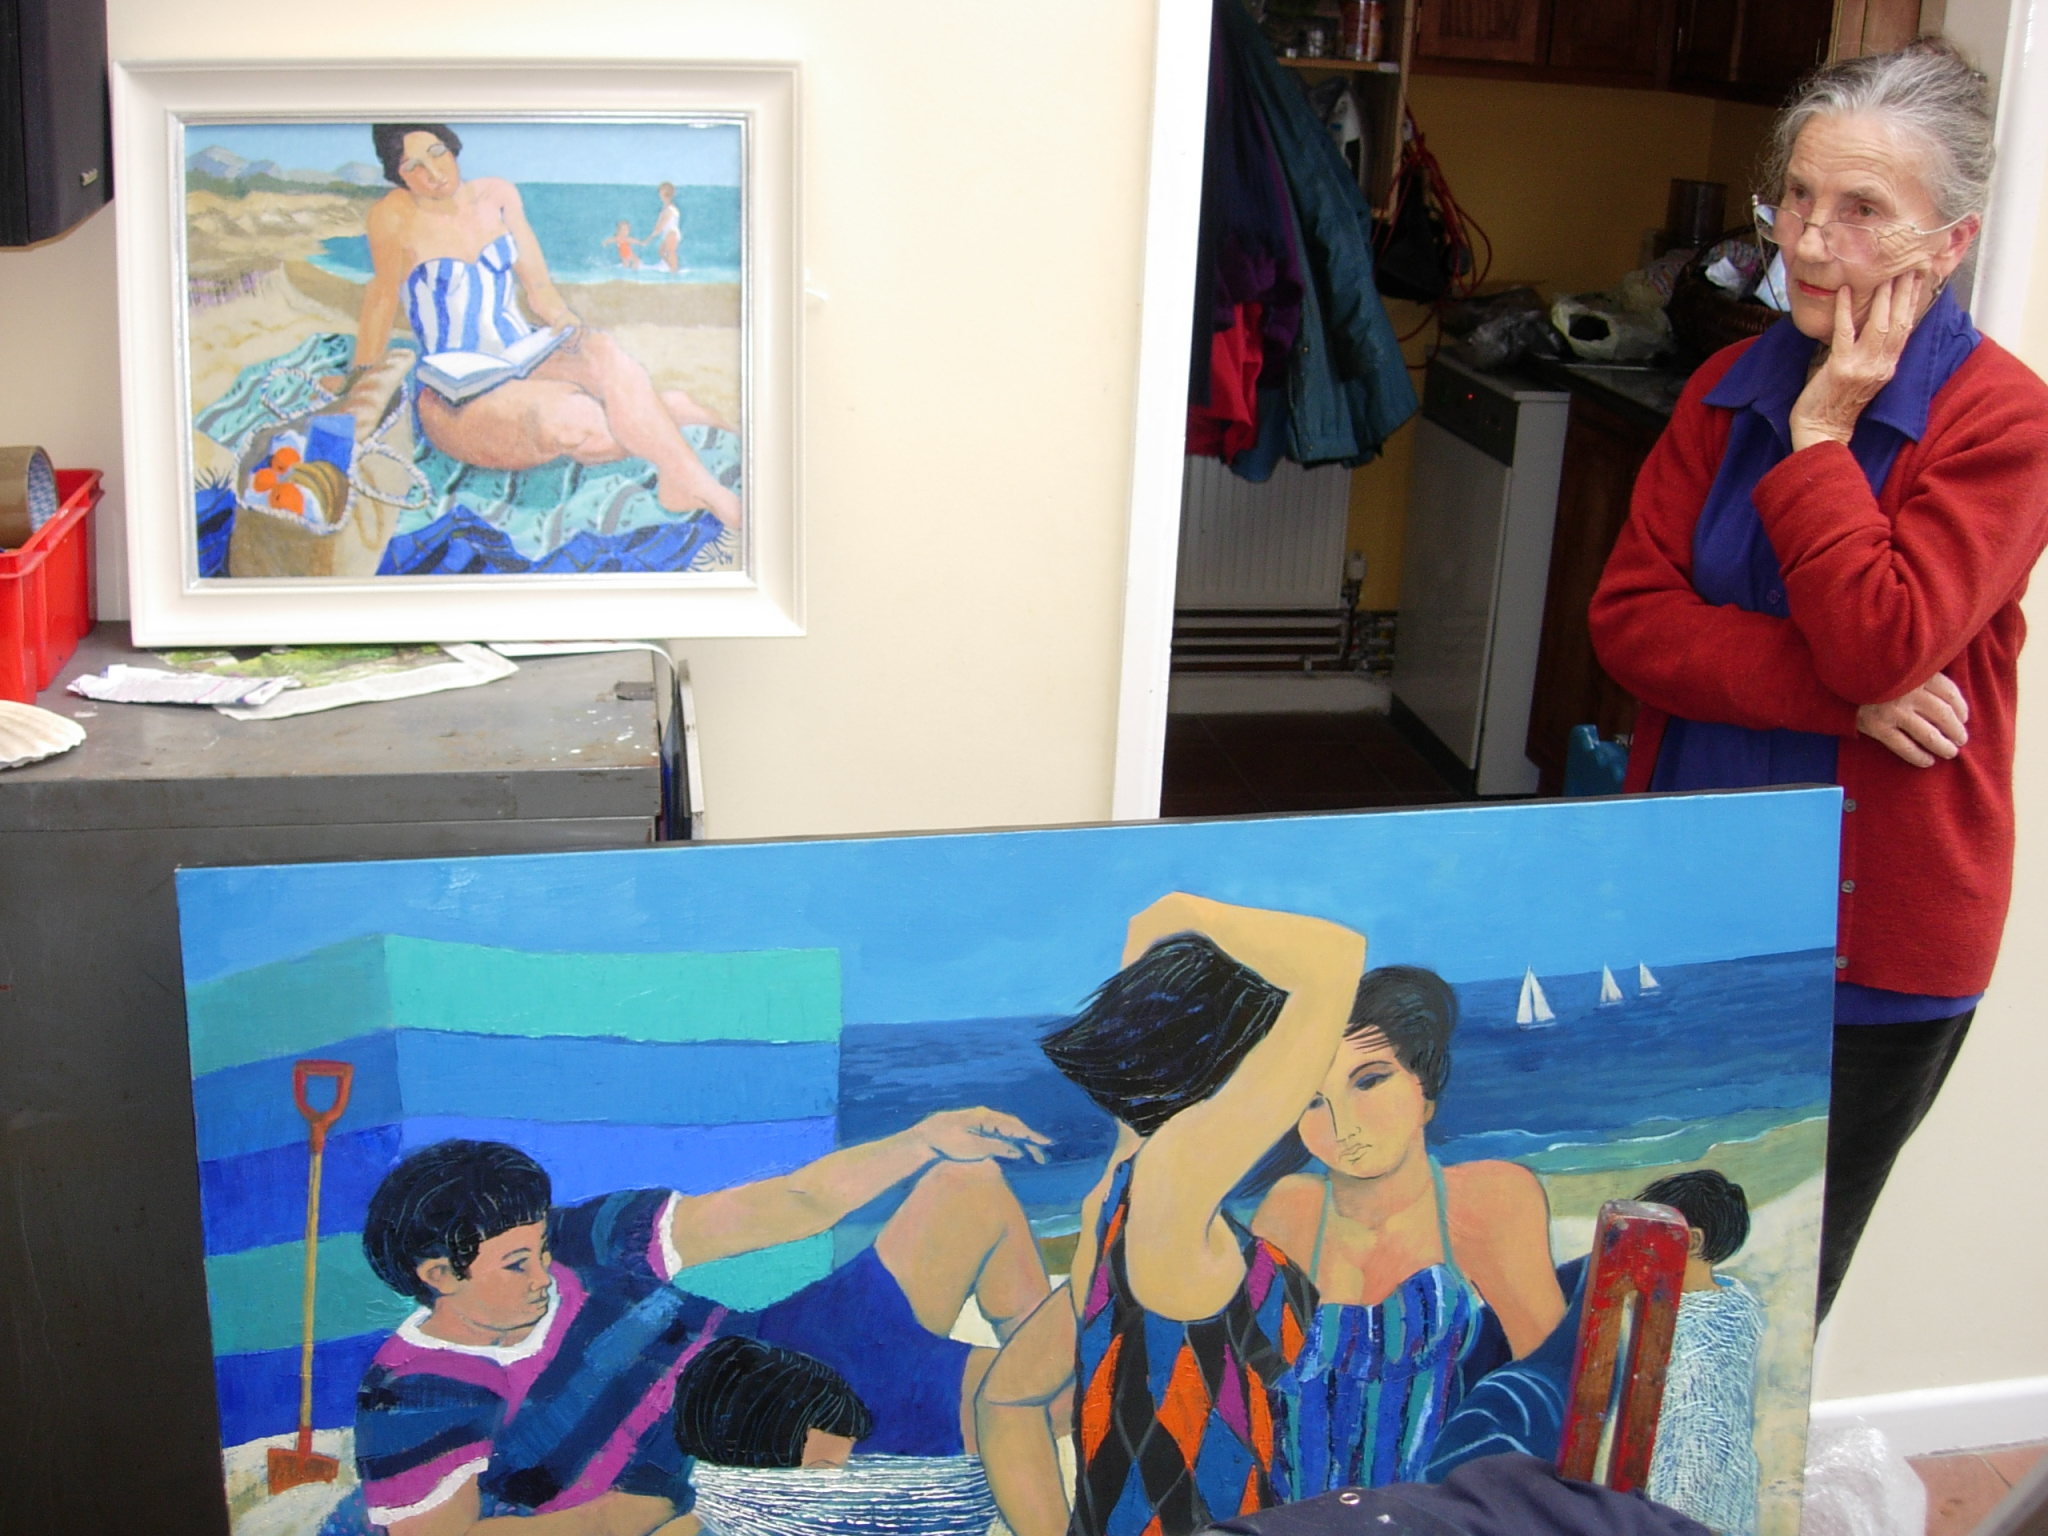 Claudia Williams with her paintings, Tenby, 29 March 2008